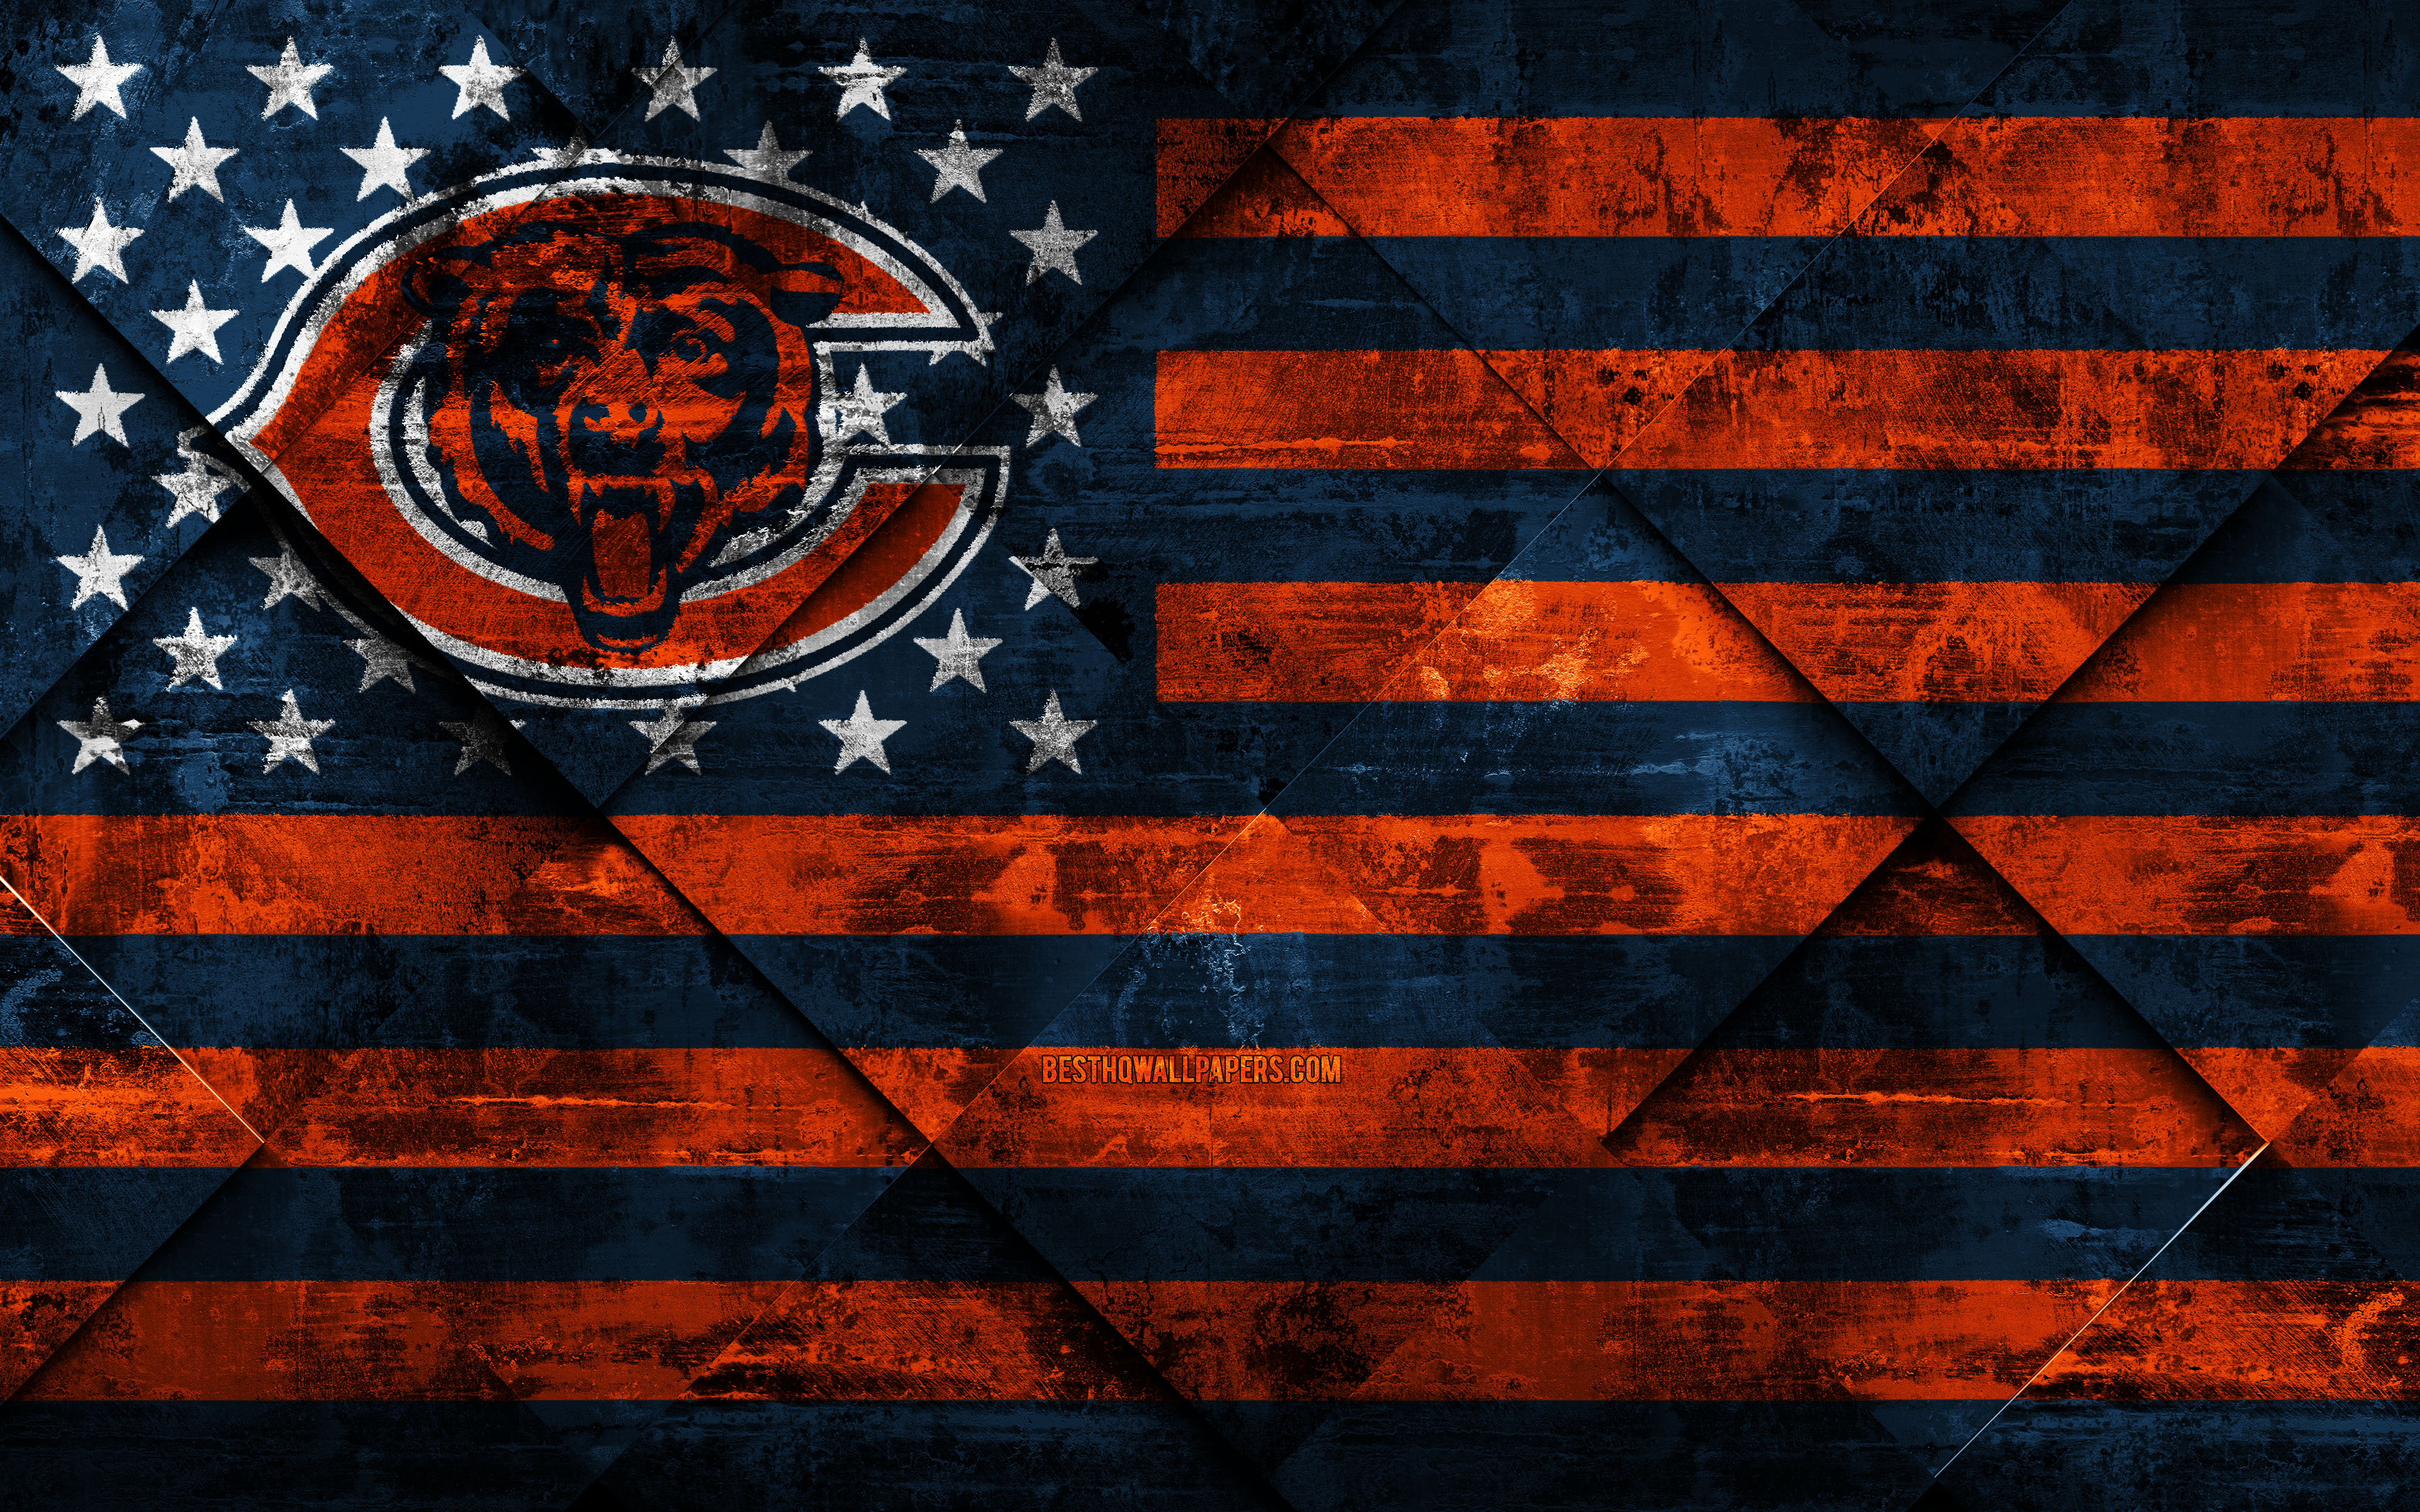 Download wallpapers Chicago Bears 4k American football club 3840x2400